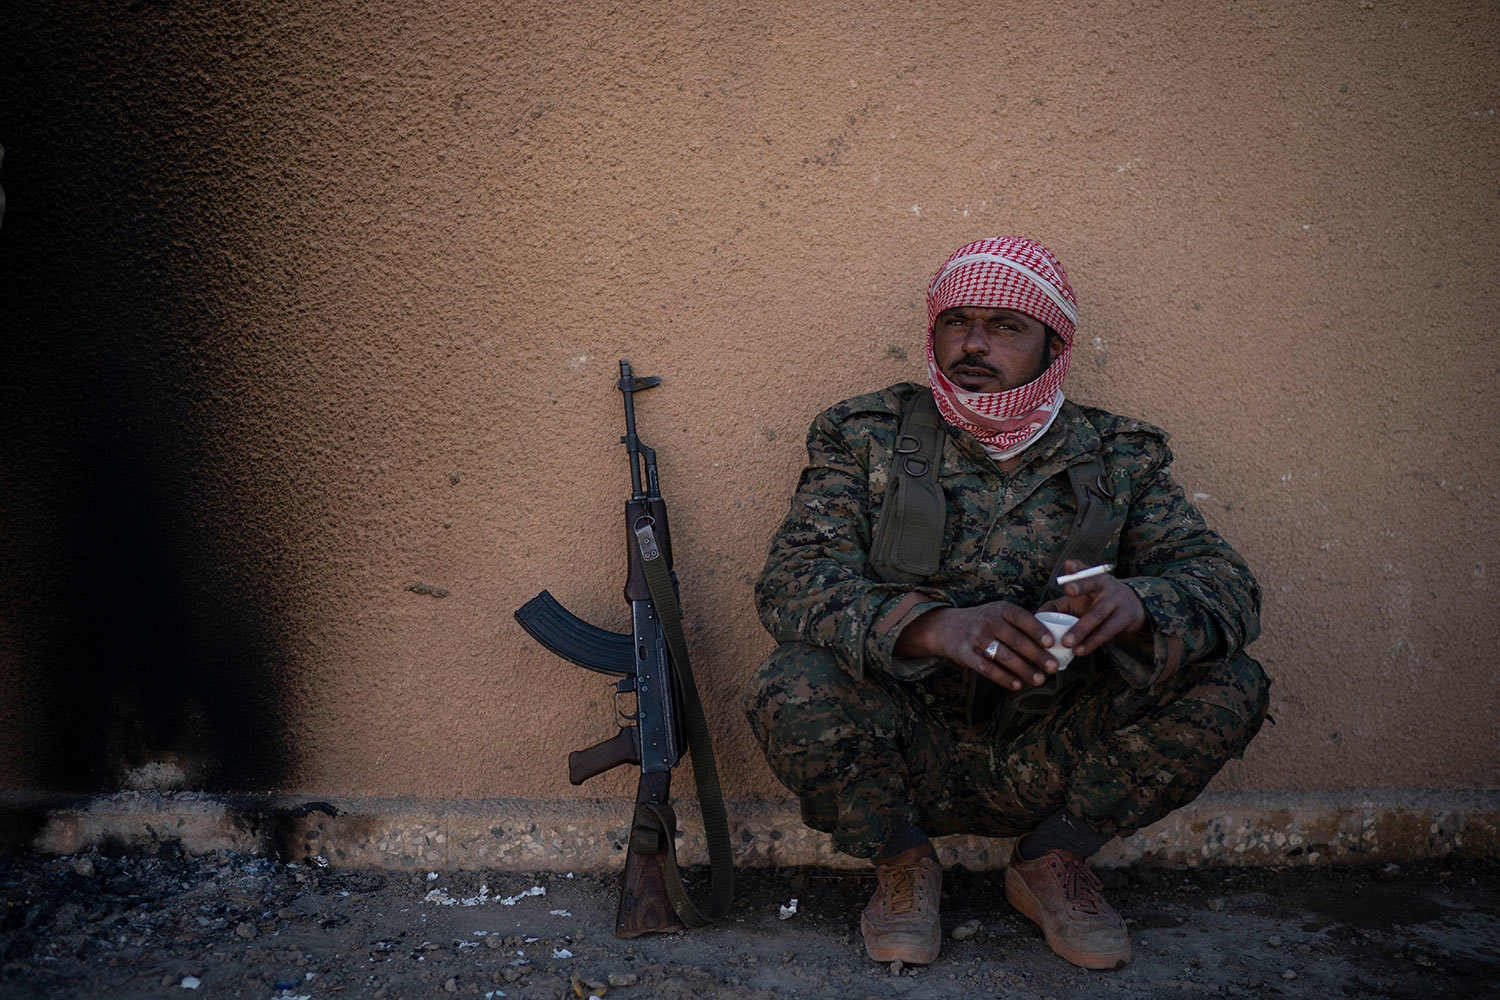 A U.S.-backed Syrian Democratic Forces (SDF) fighter sits inside a building used as a temporary base near the last land still held by Islamic State militants in Baghouz, Syria, Monday, Feb. 18, 2019. (AP Photo/Felipe Dana)